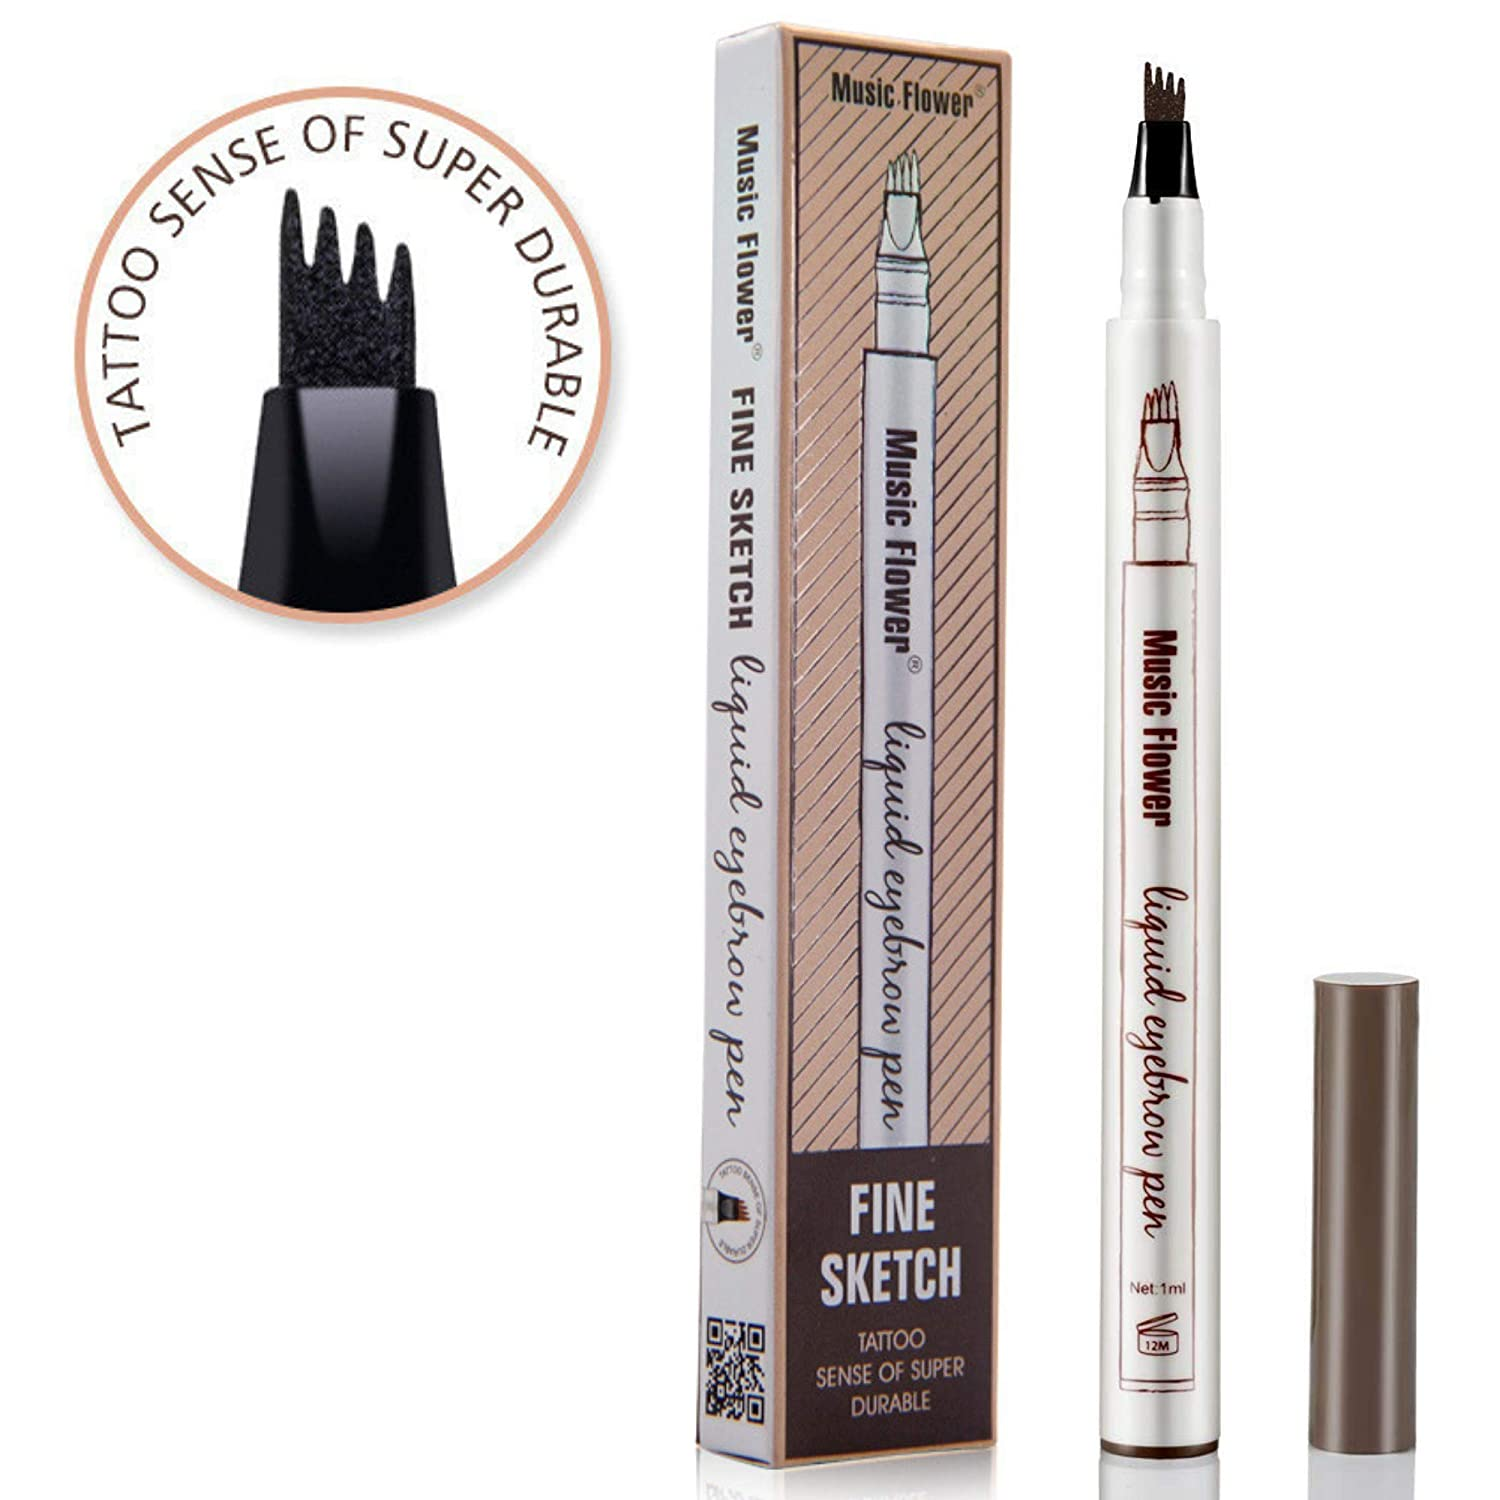 Music Flower liquid eyebrow pencil with four tips brow tattoo pen (Chestnut) Eye See Makeup